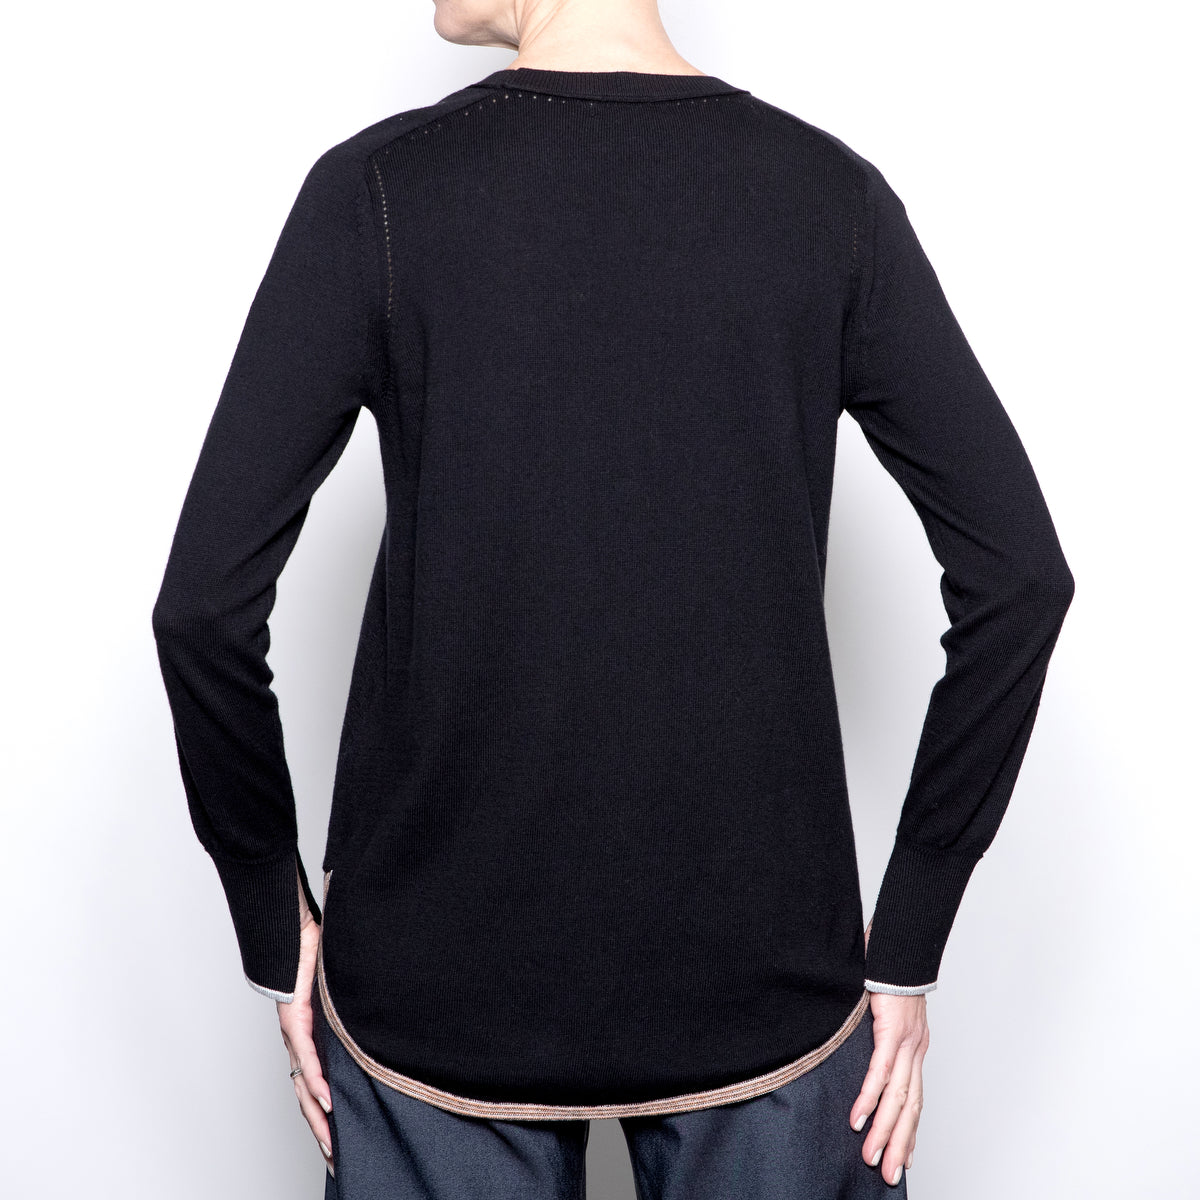 Zaket and Plover Pocket Sweater